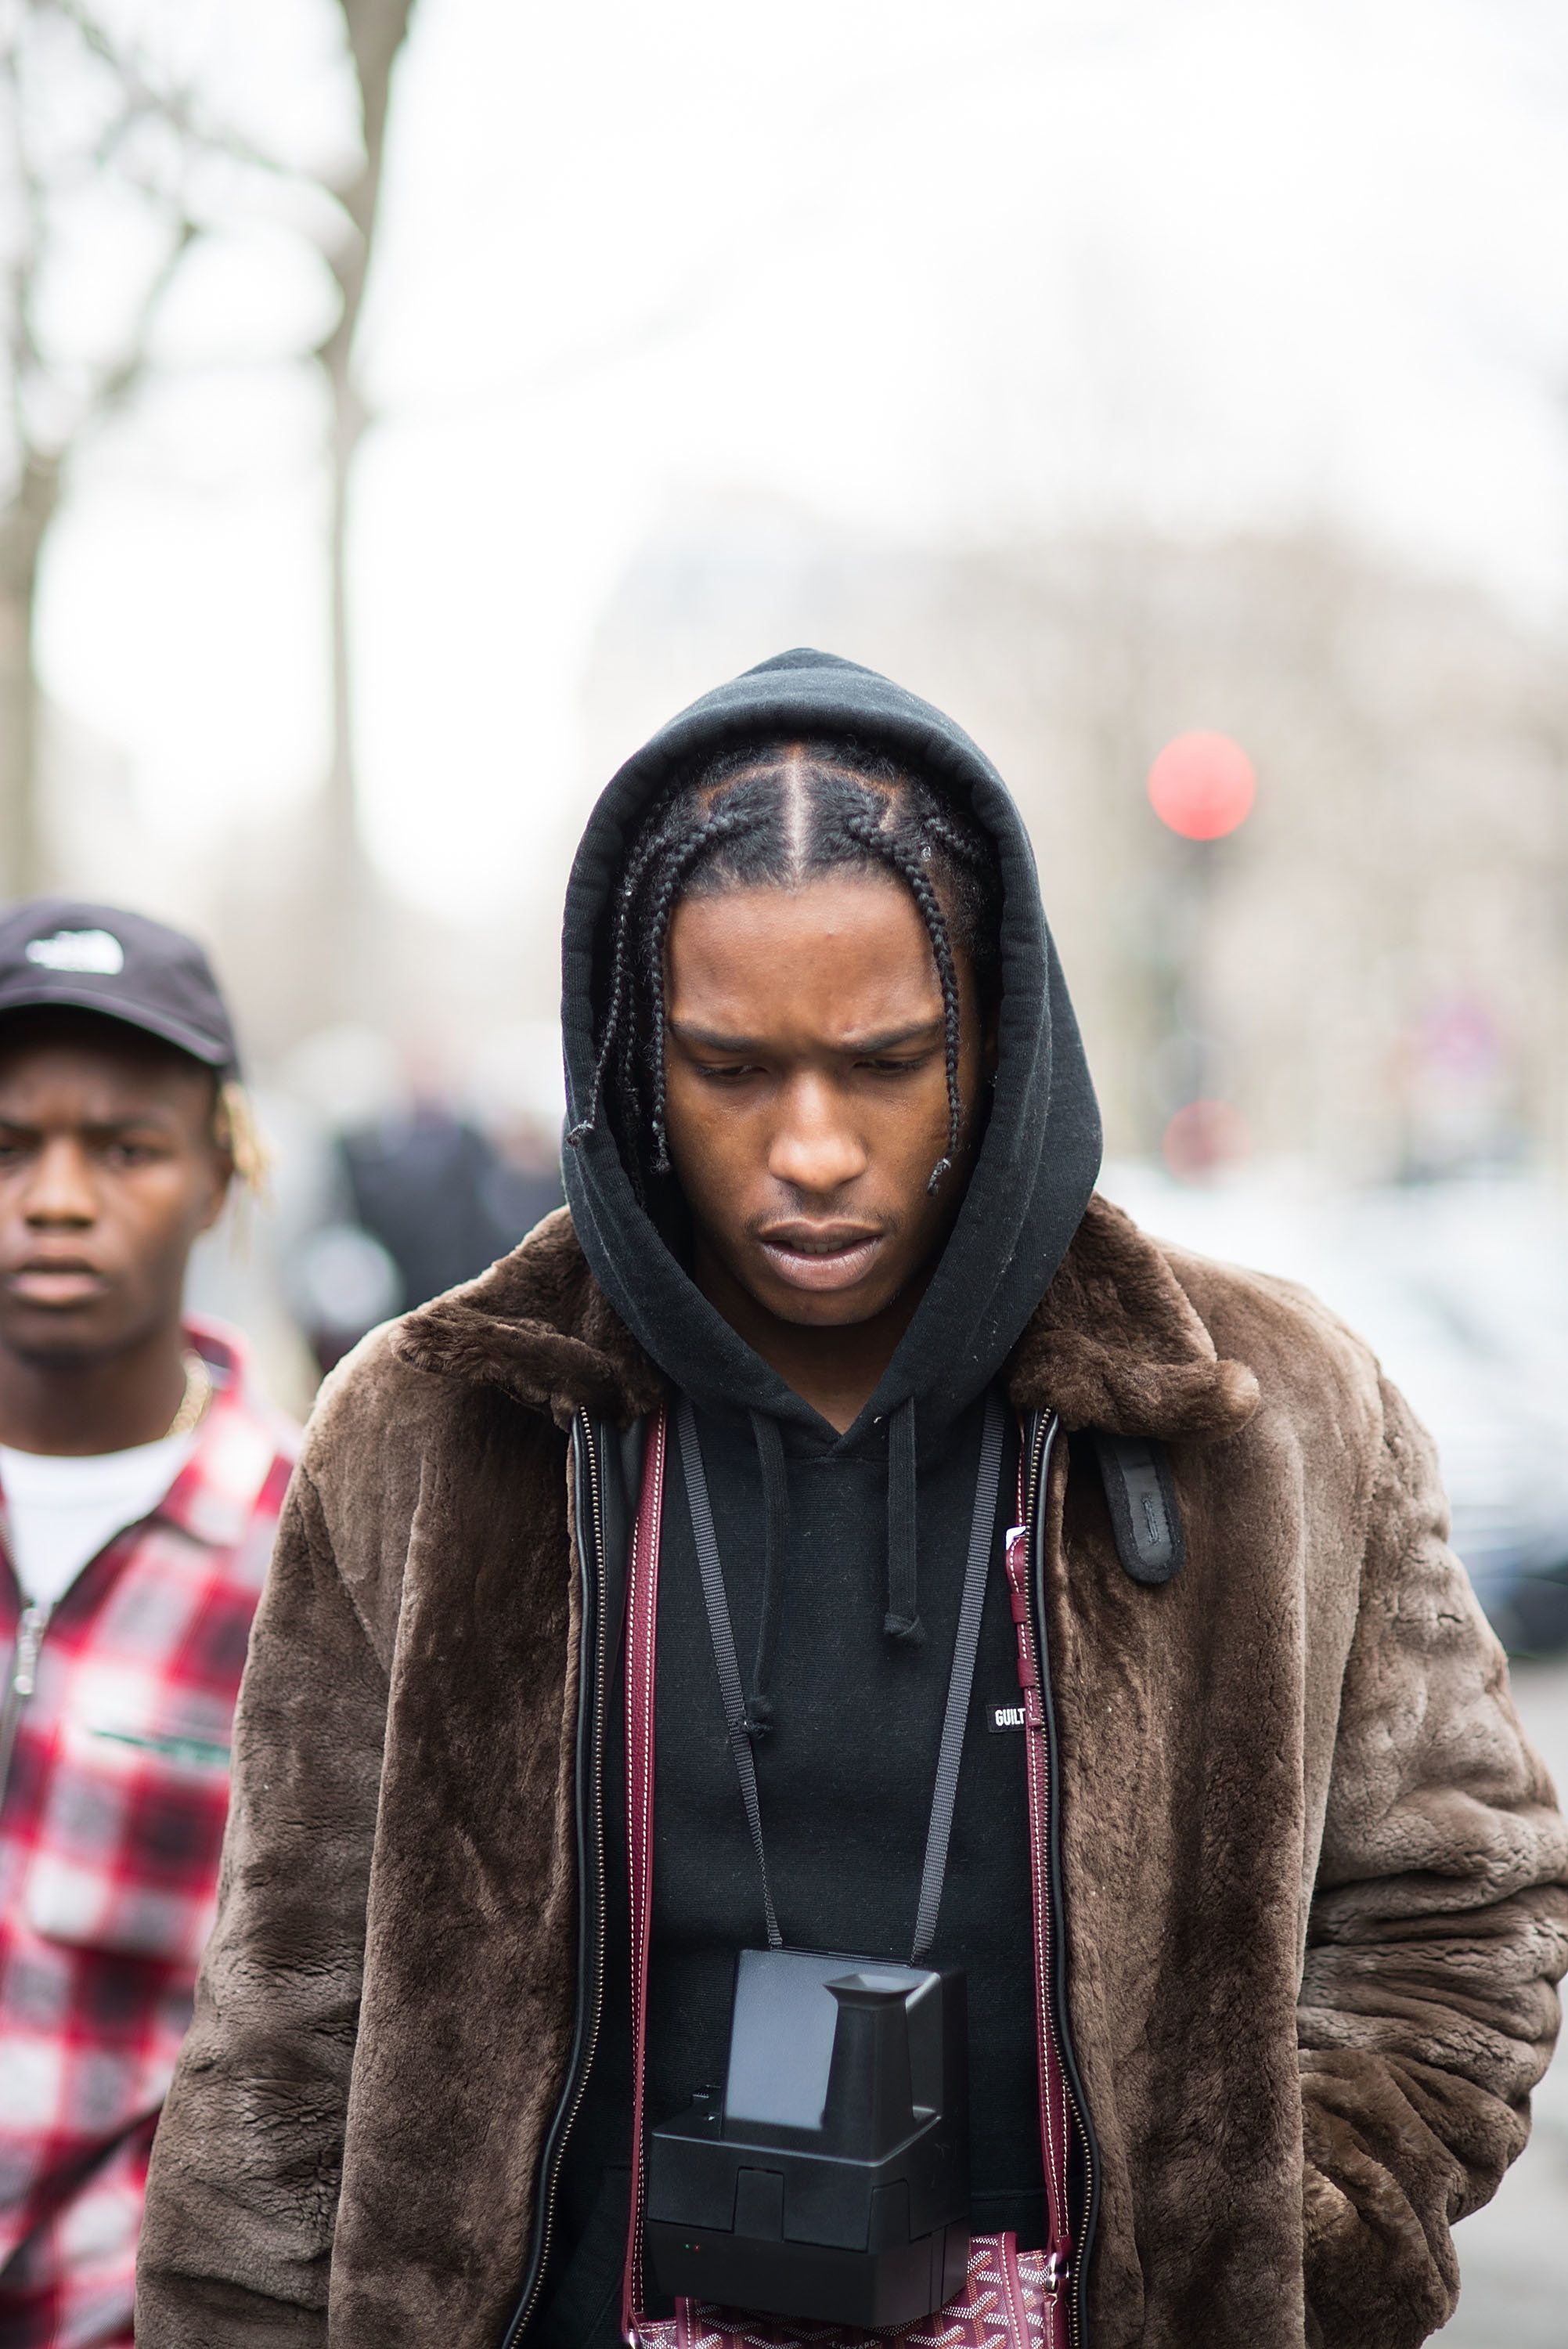 PARIS, FRANCE - MARCH 09: Asap Rocky leaves after the Miu Miu show at Place de Iena during Paris Fashion Week FW 16/17 on March 9, 2016 in Paris, France.  (Photo by Vanni Bassetti/Getty Images)